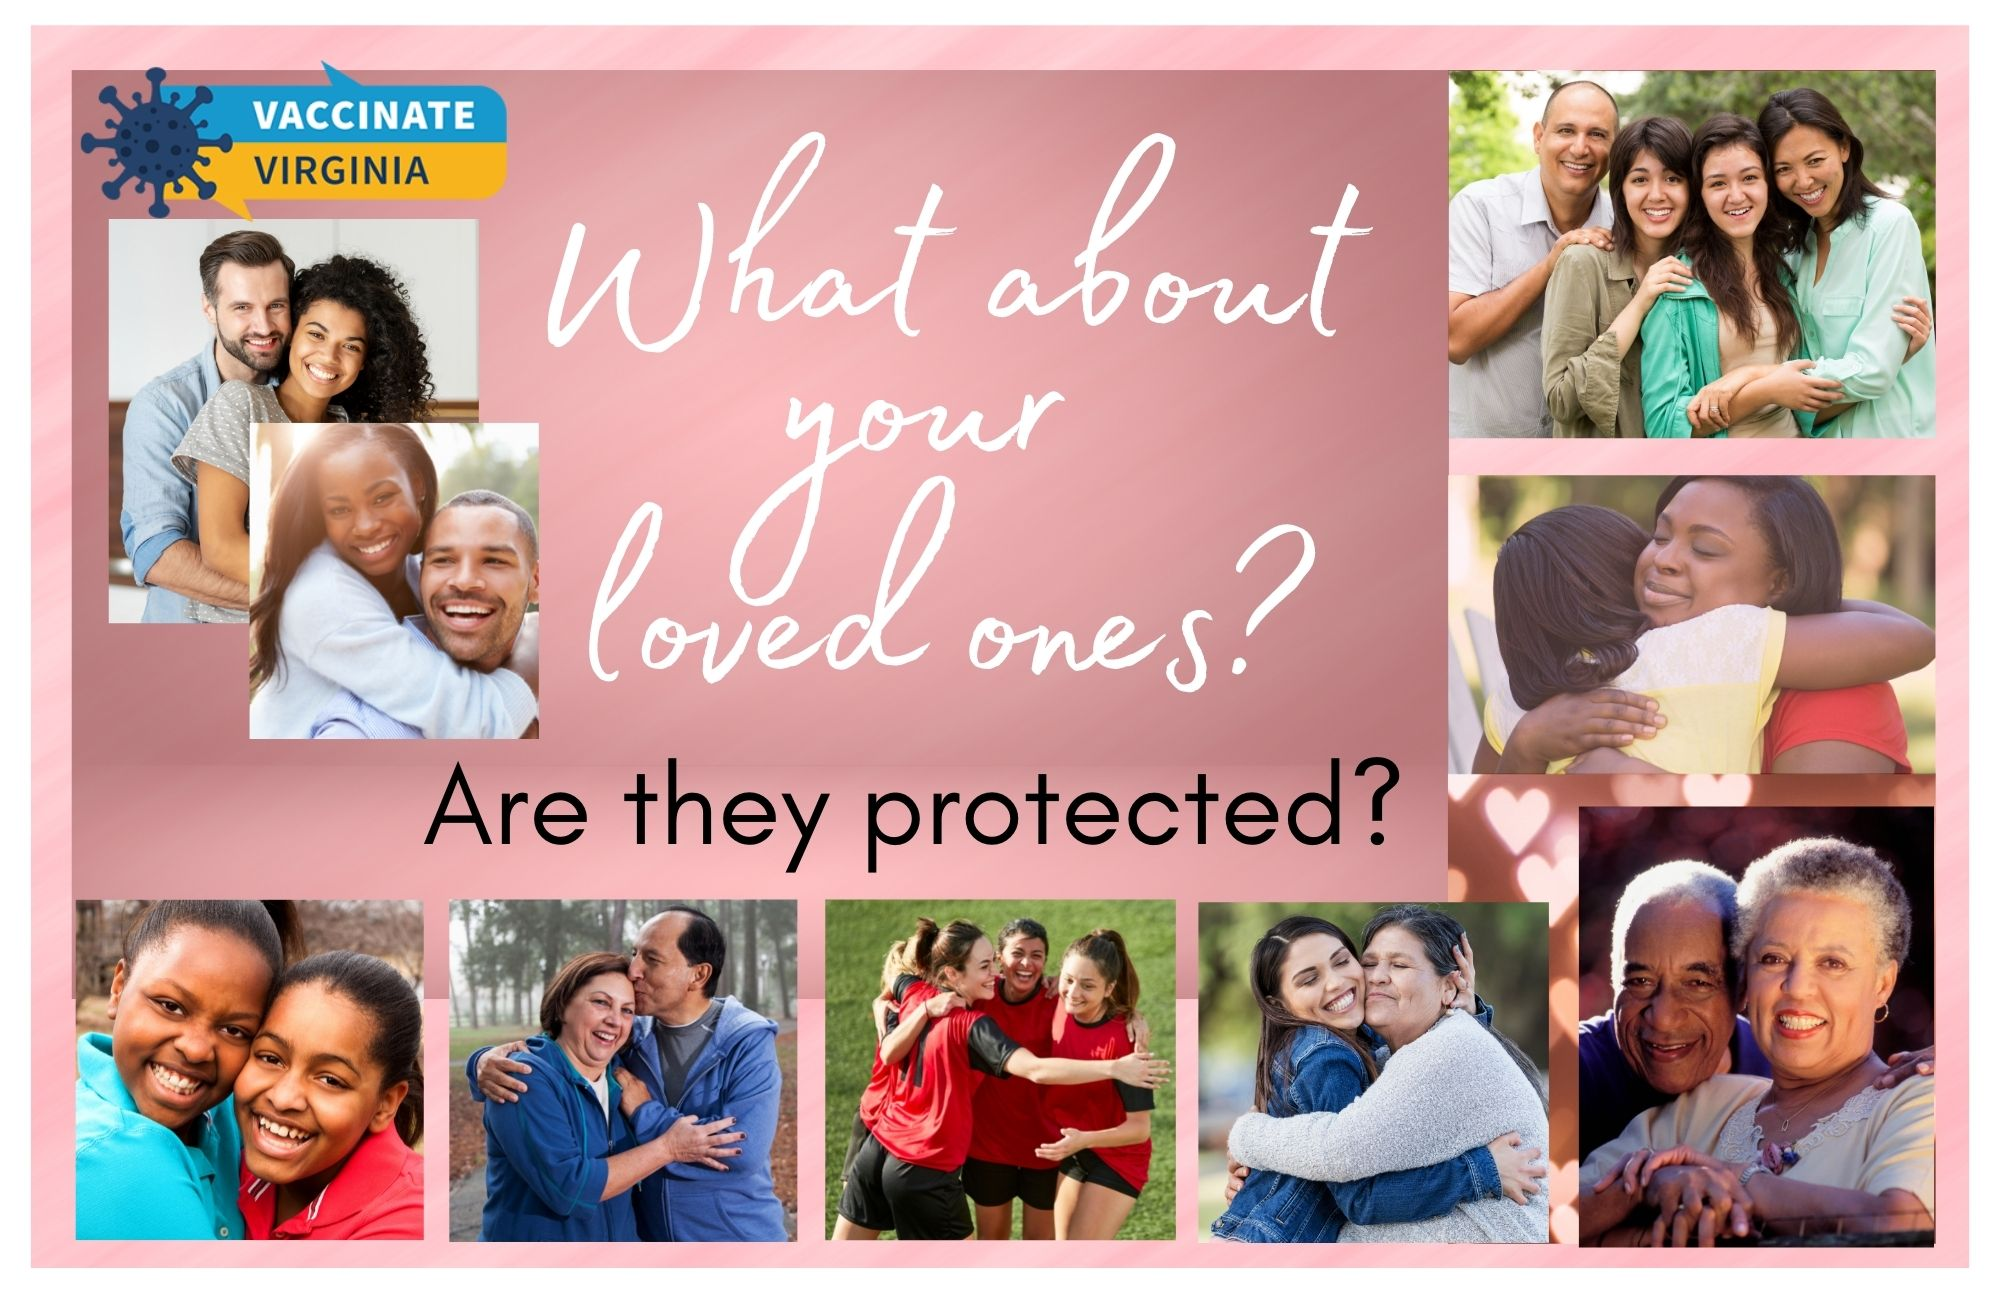 YWhat about your loved ones? Are they protected. Vaccinate Virginia ur loved ones, are they protected